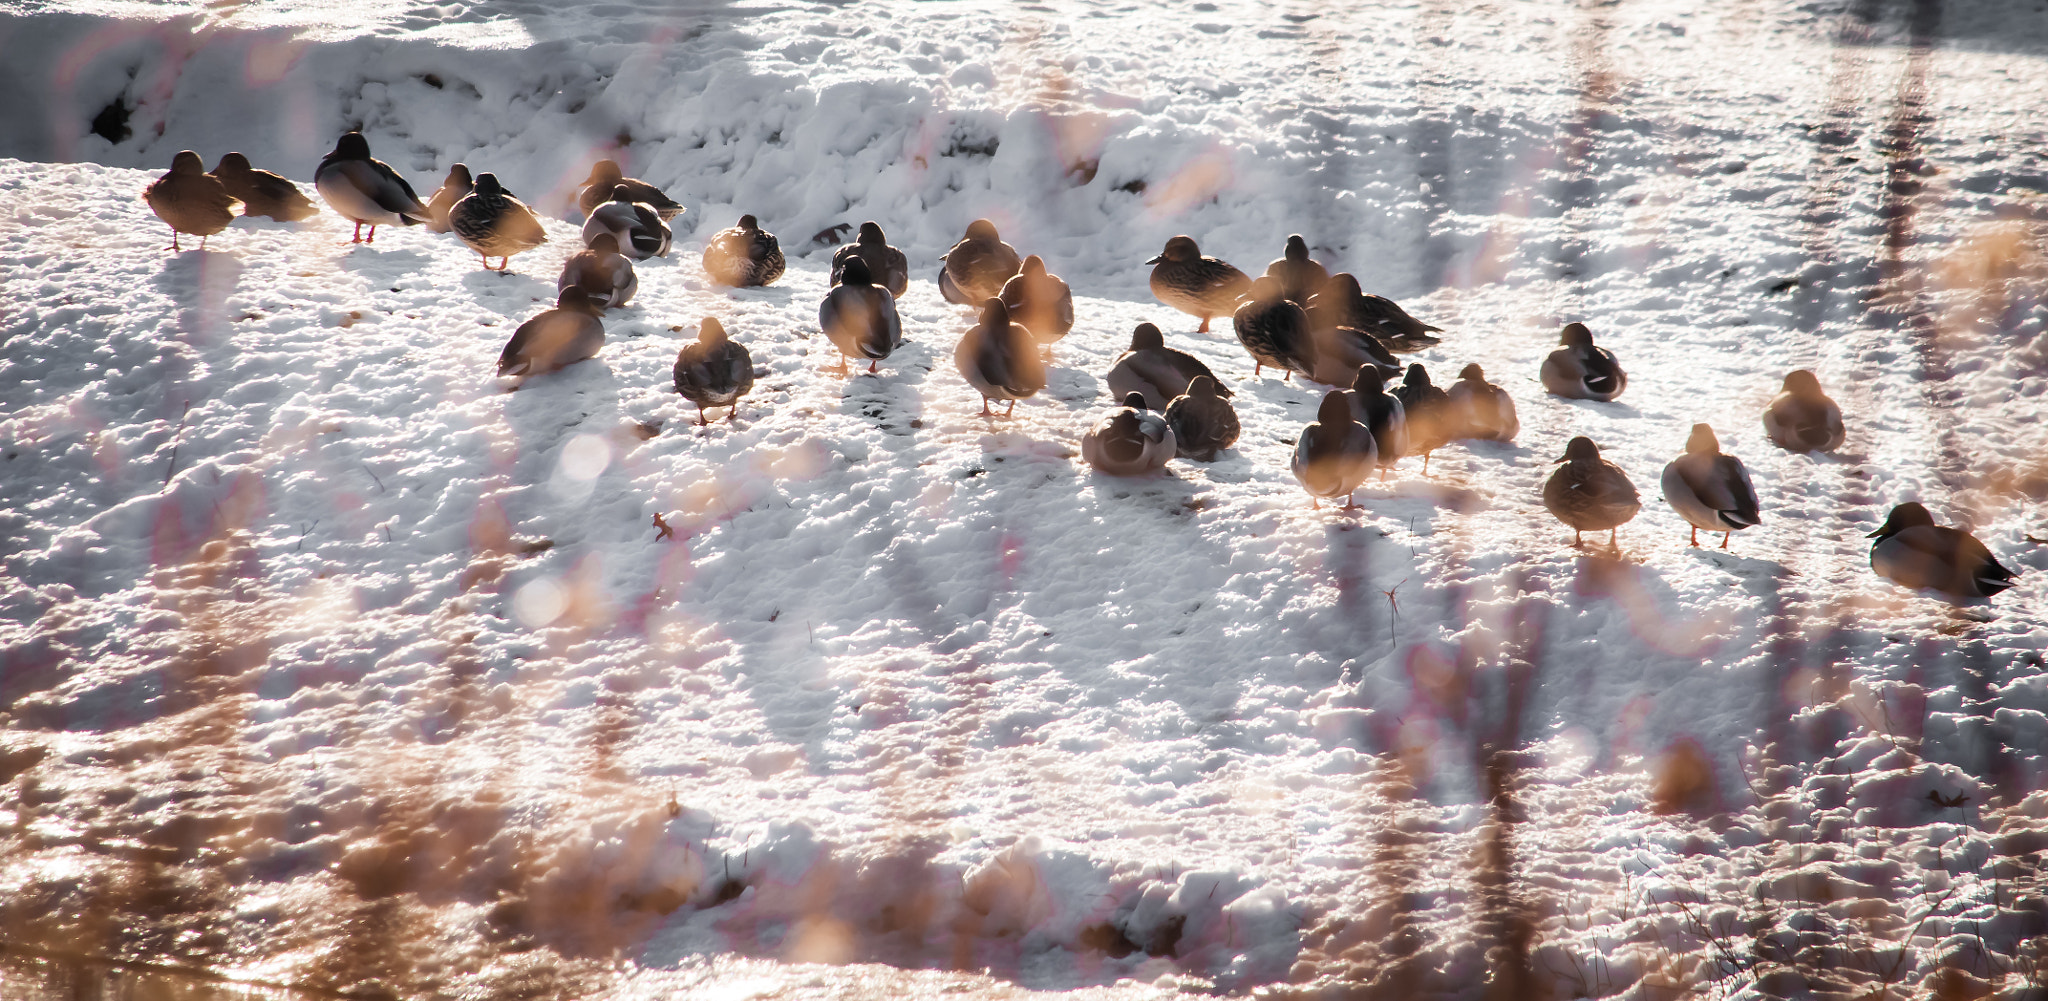 Photograph Ducks in the Wind by Nick Tsouroullis on 500px